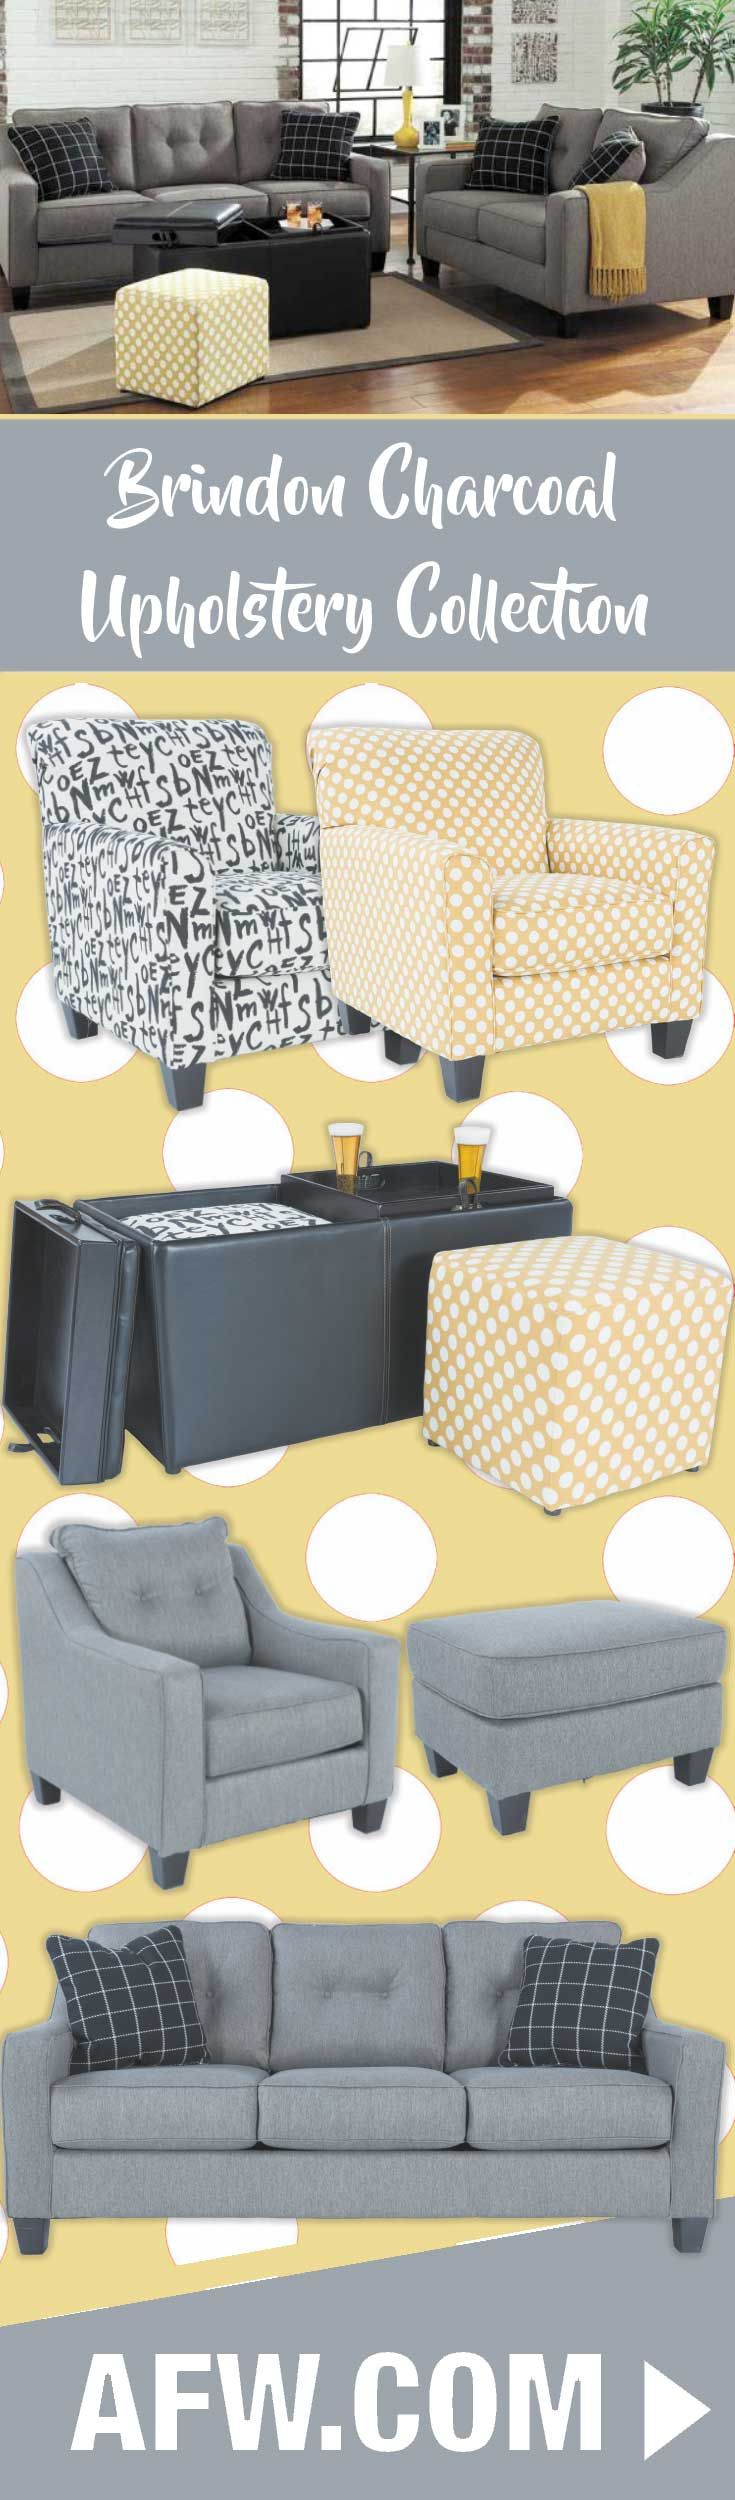 Contemporary canary colored accent chairs - The Plaid Pattern On The Accent Pillows Offers A Contemporary Feel While The White On Yellow Polka Dot Accent Chair